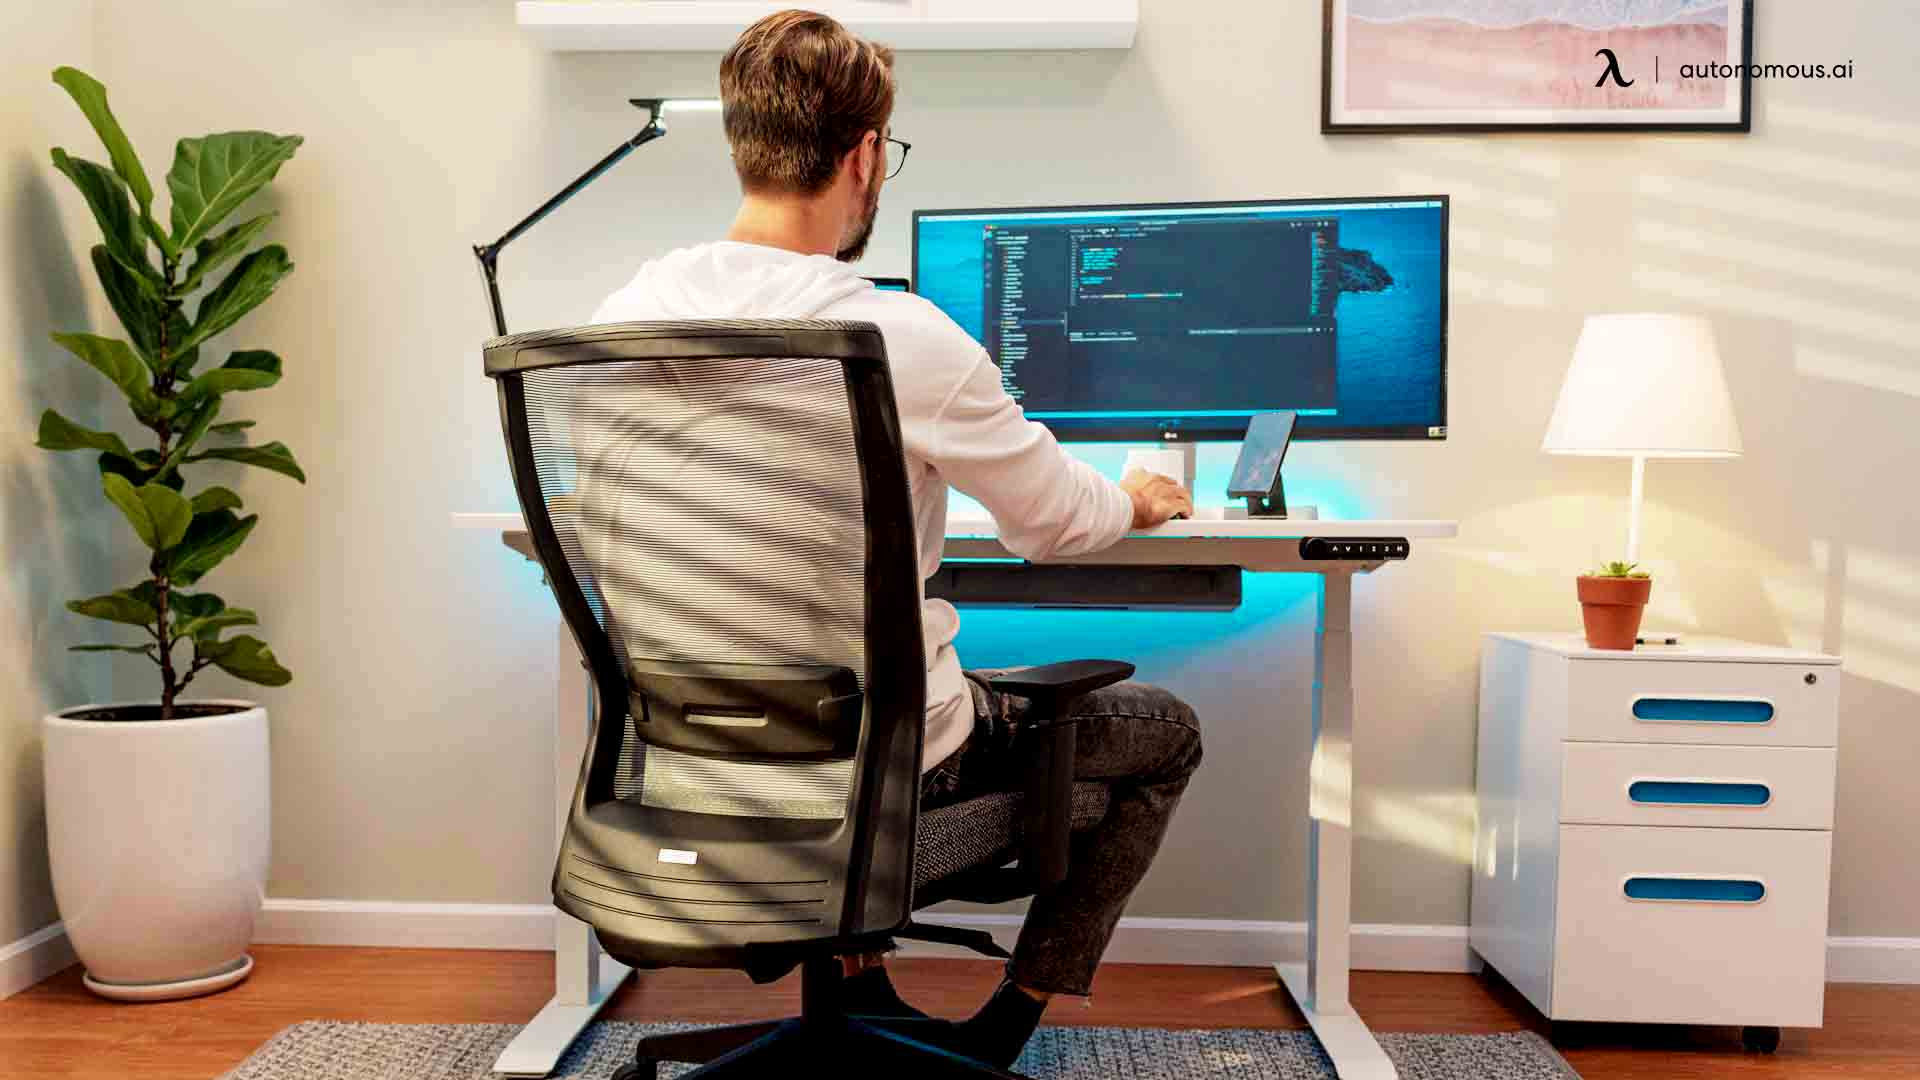 replicate the work at home